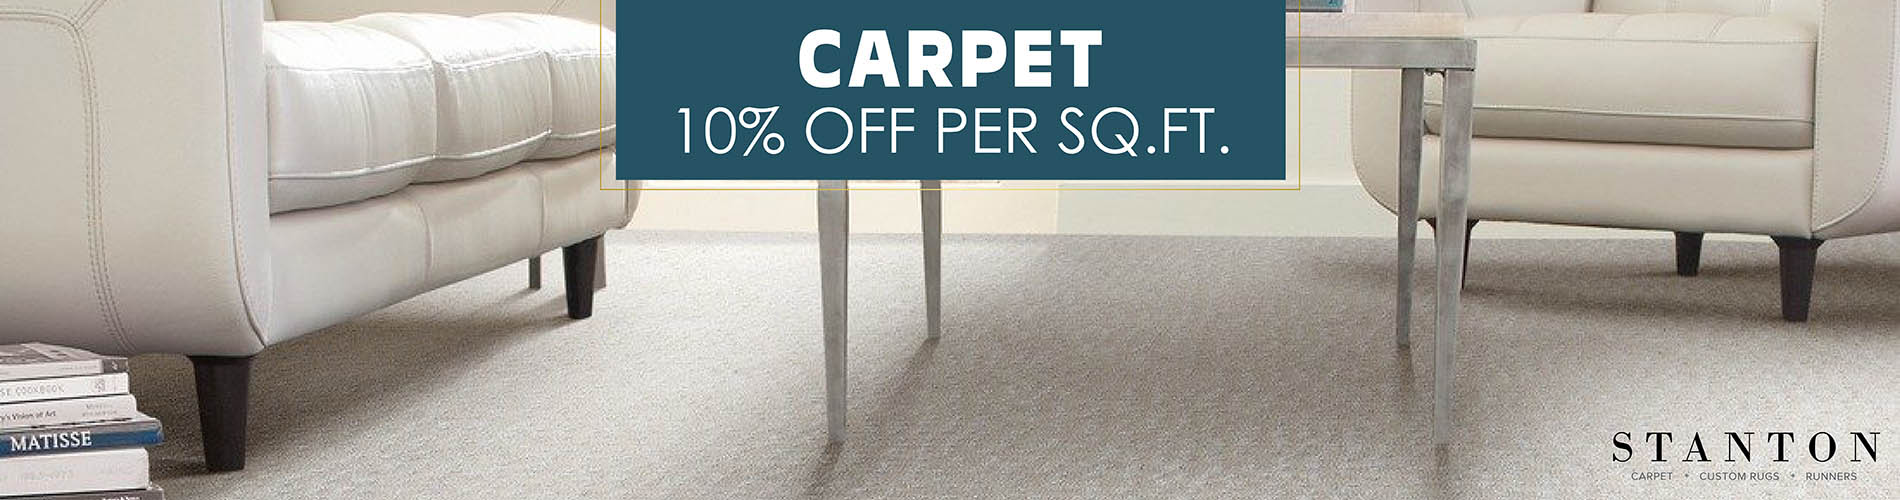 10% off per sq.ft. on Stanton carpet purchases this month only!